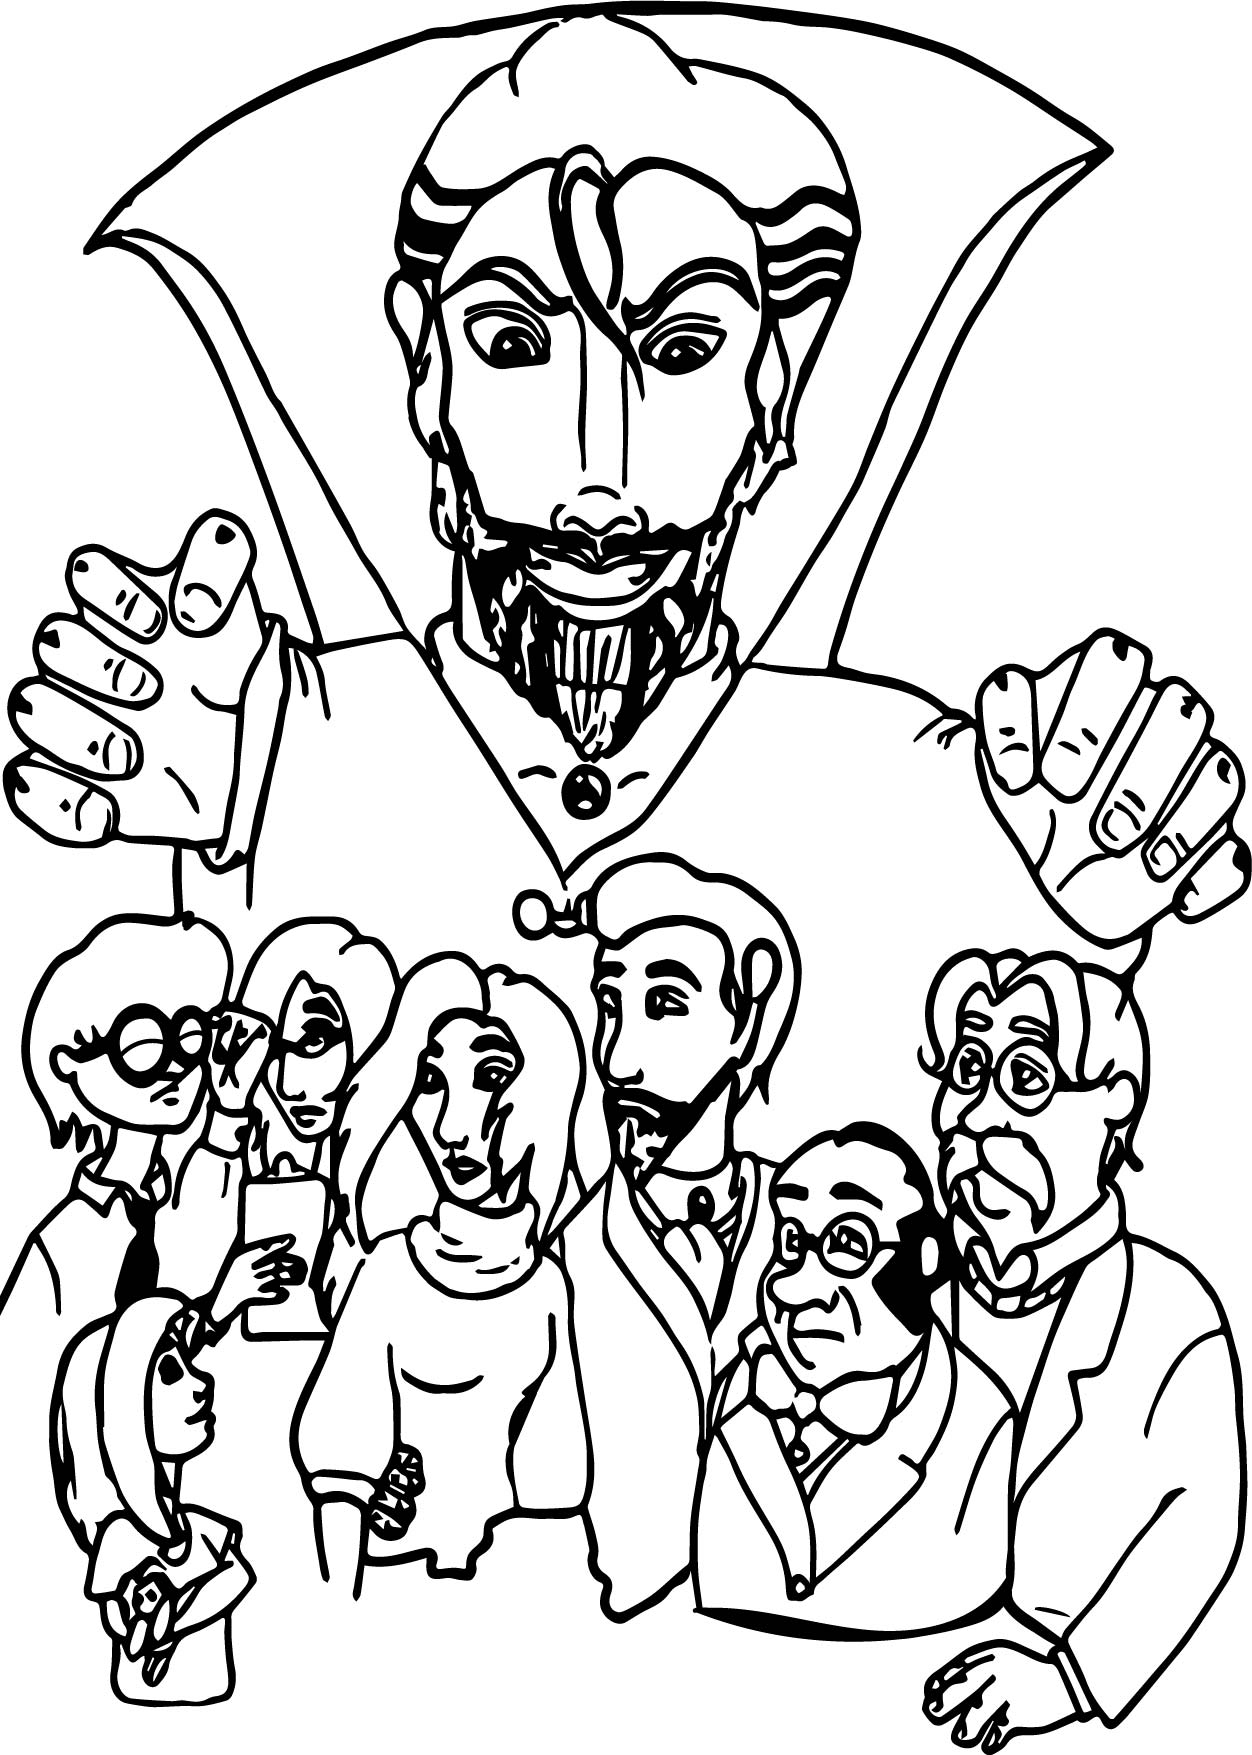 coloring pages odyssey of homer - photo#23